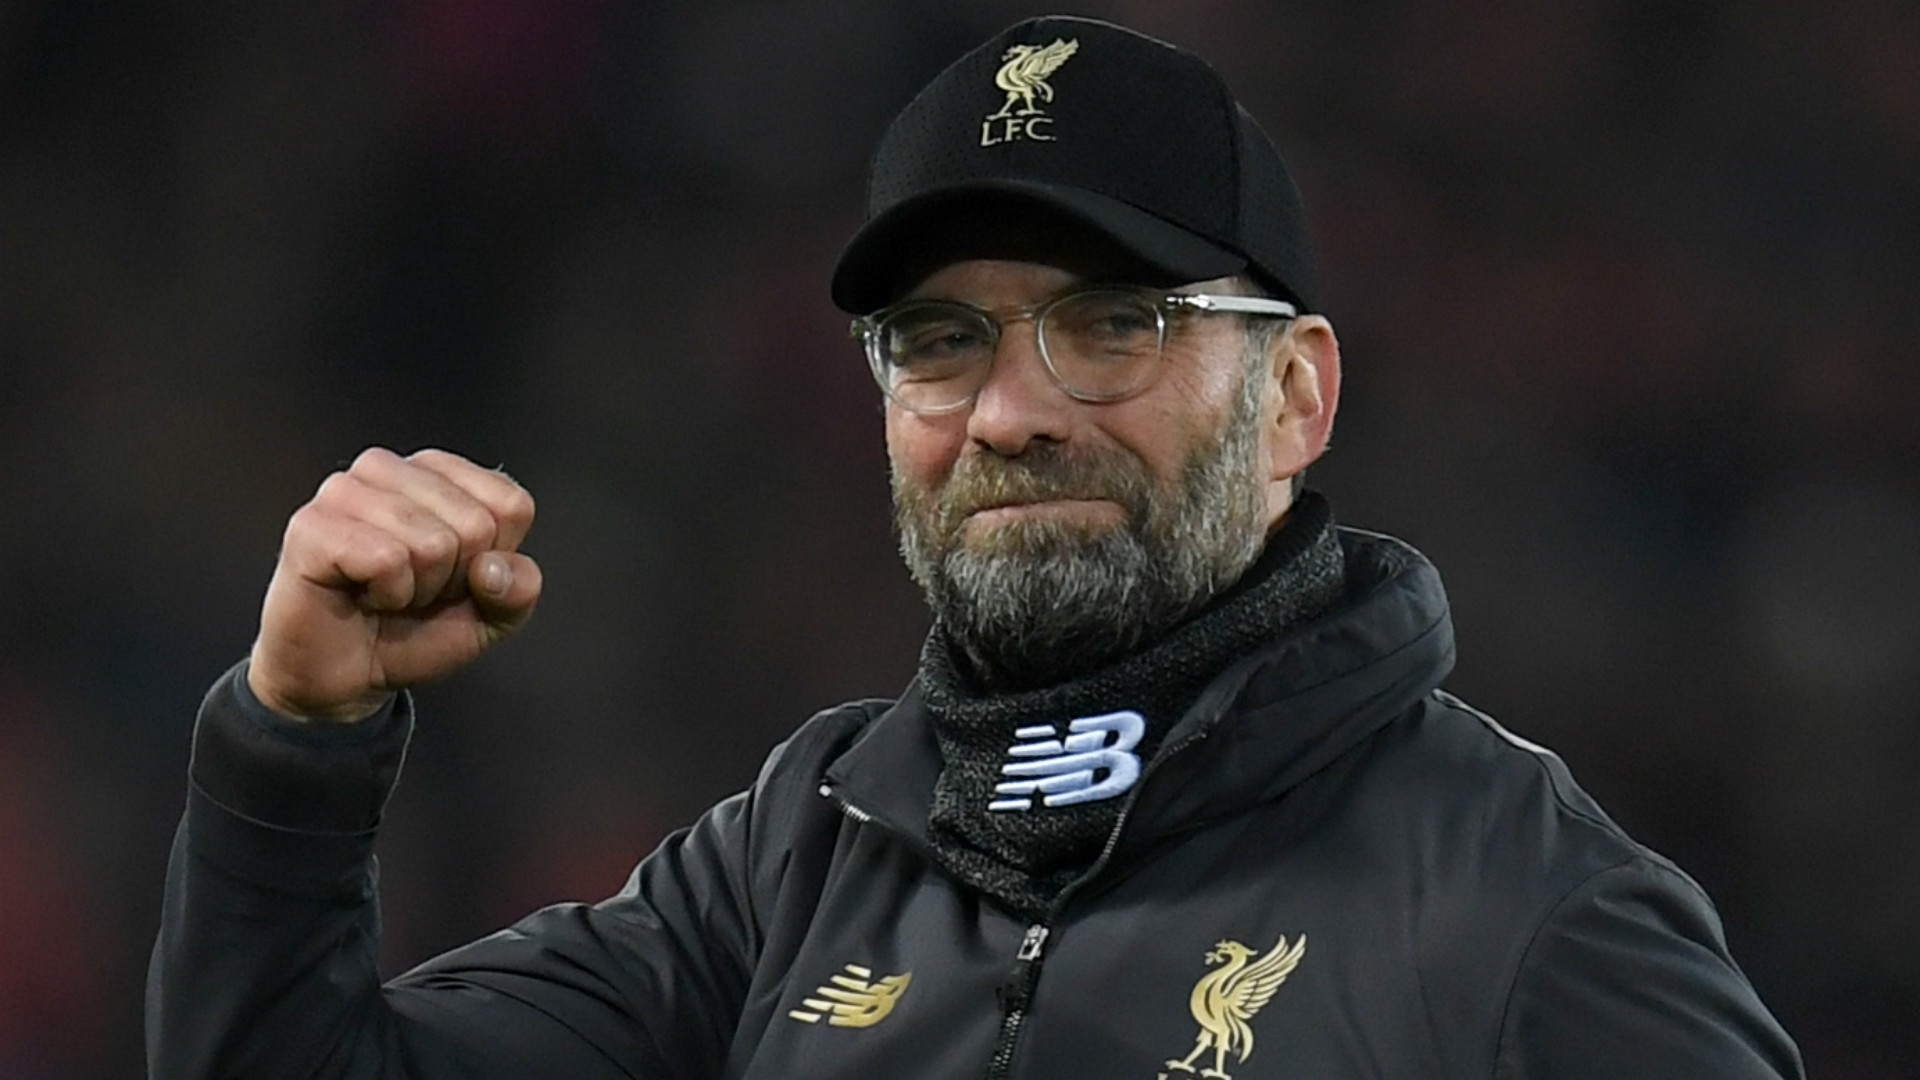 Premier League: Jurgen Klopp says Liverpool 'have qualified for their final' after beating Newcastle 2-3